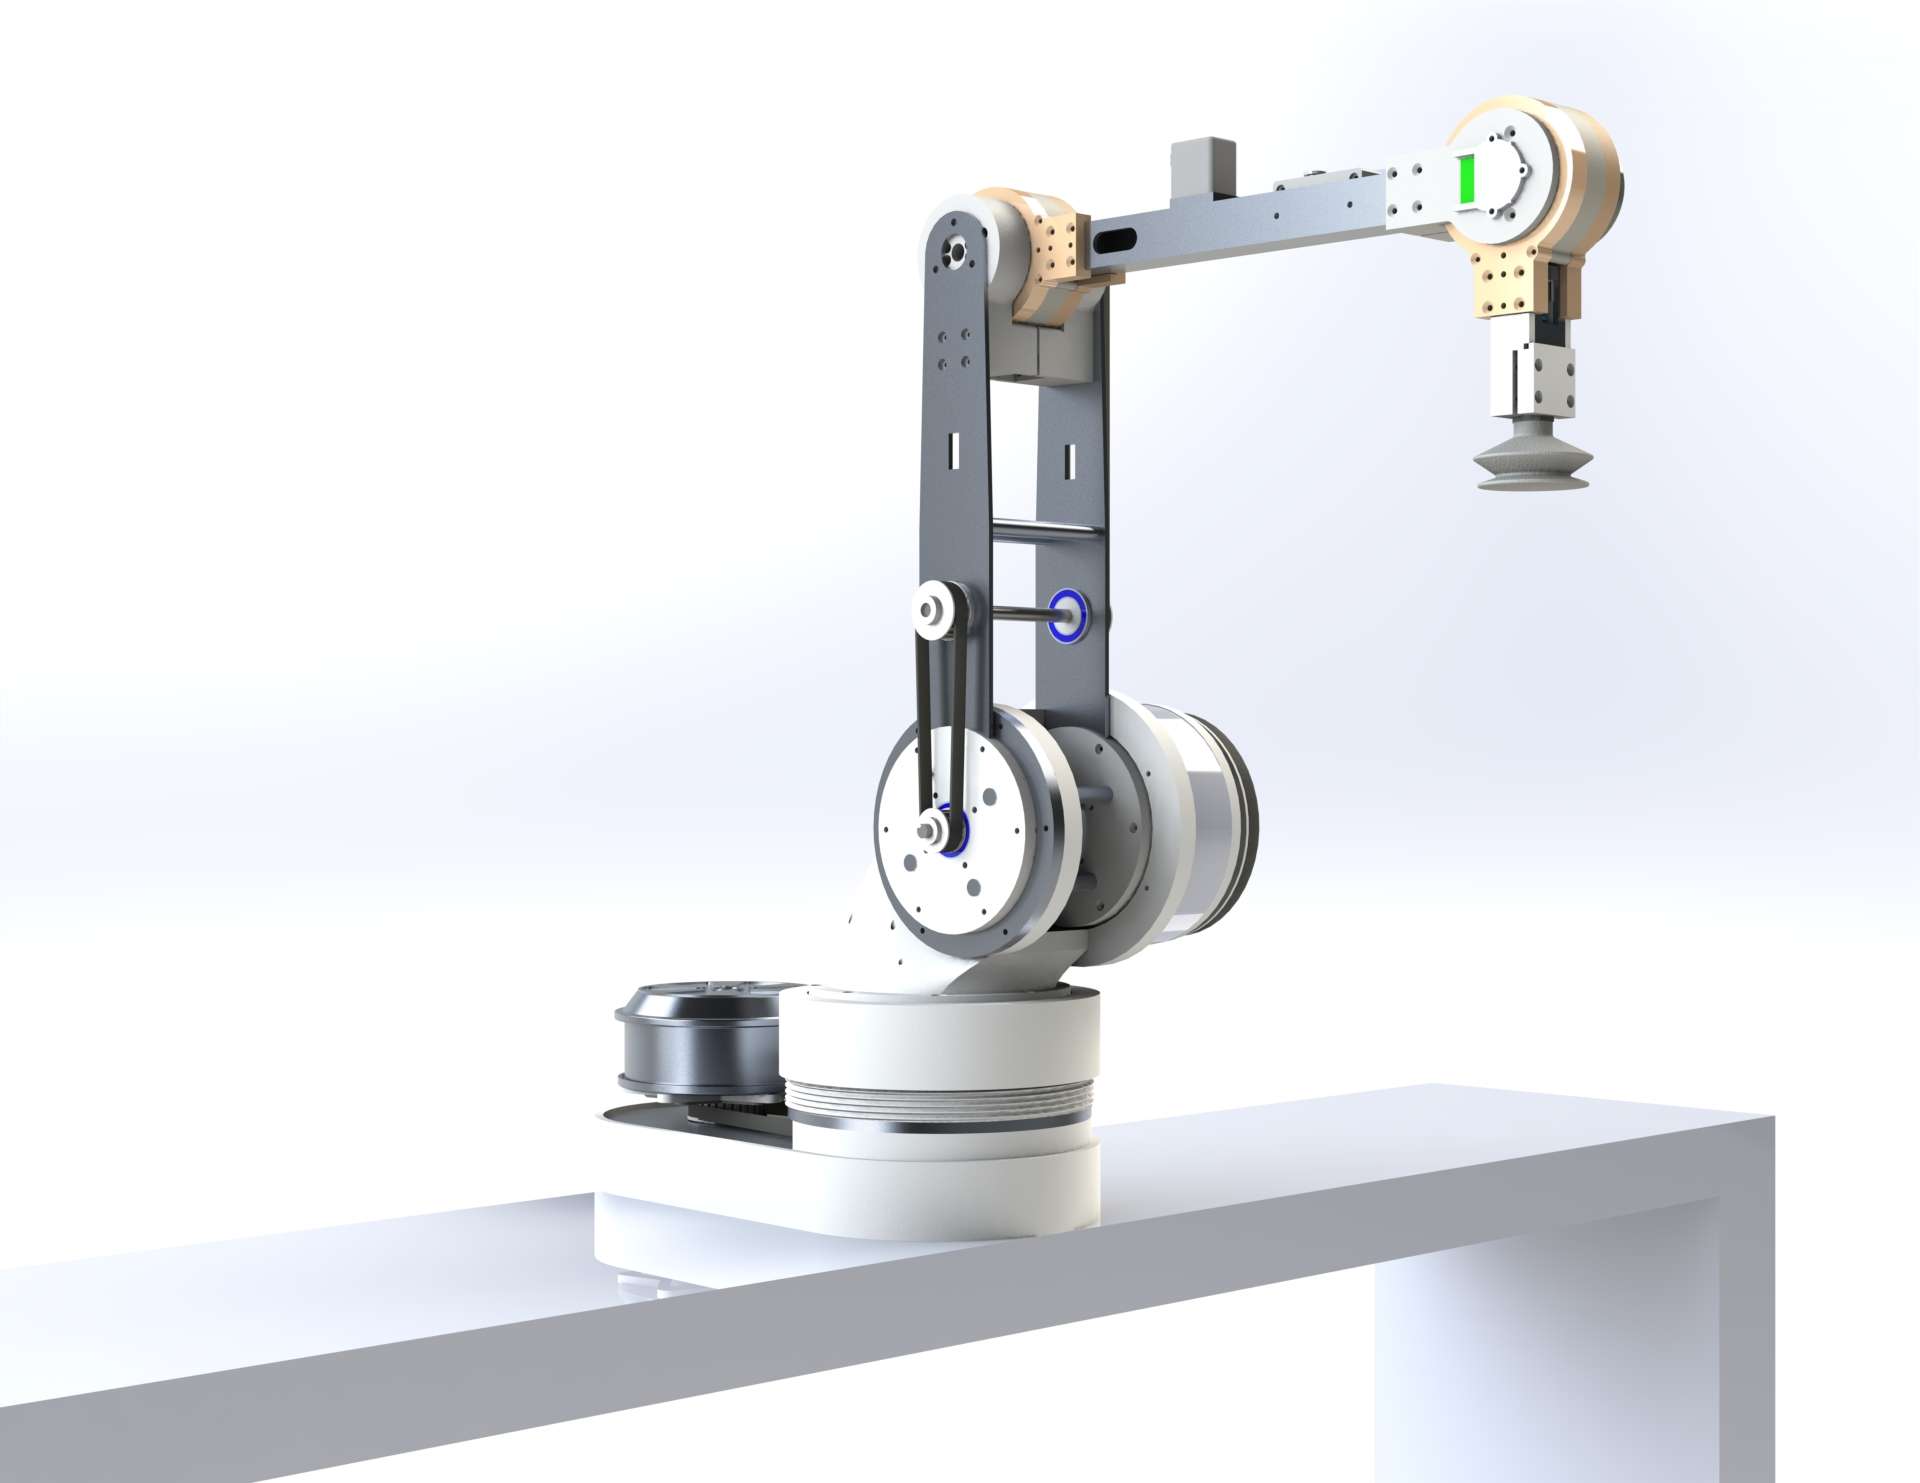 A rendering of the ARbot, a thin machine with a long mechanical arm